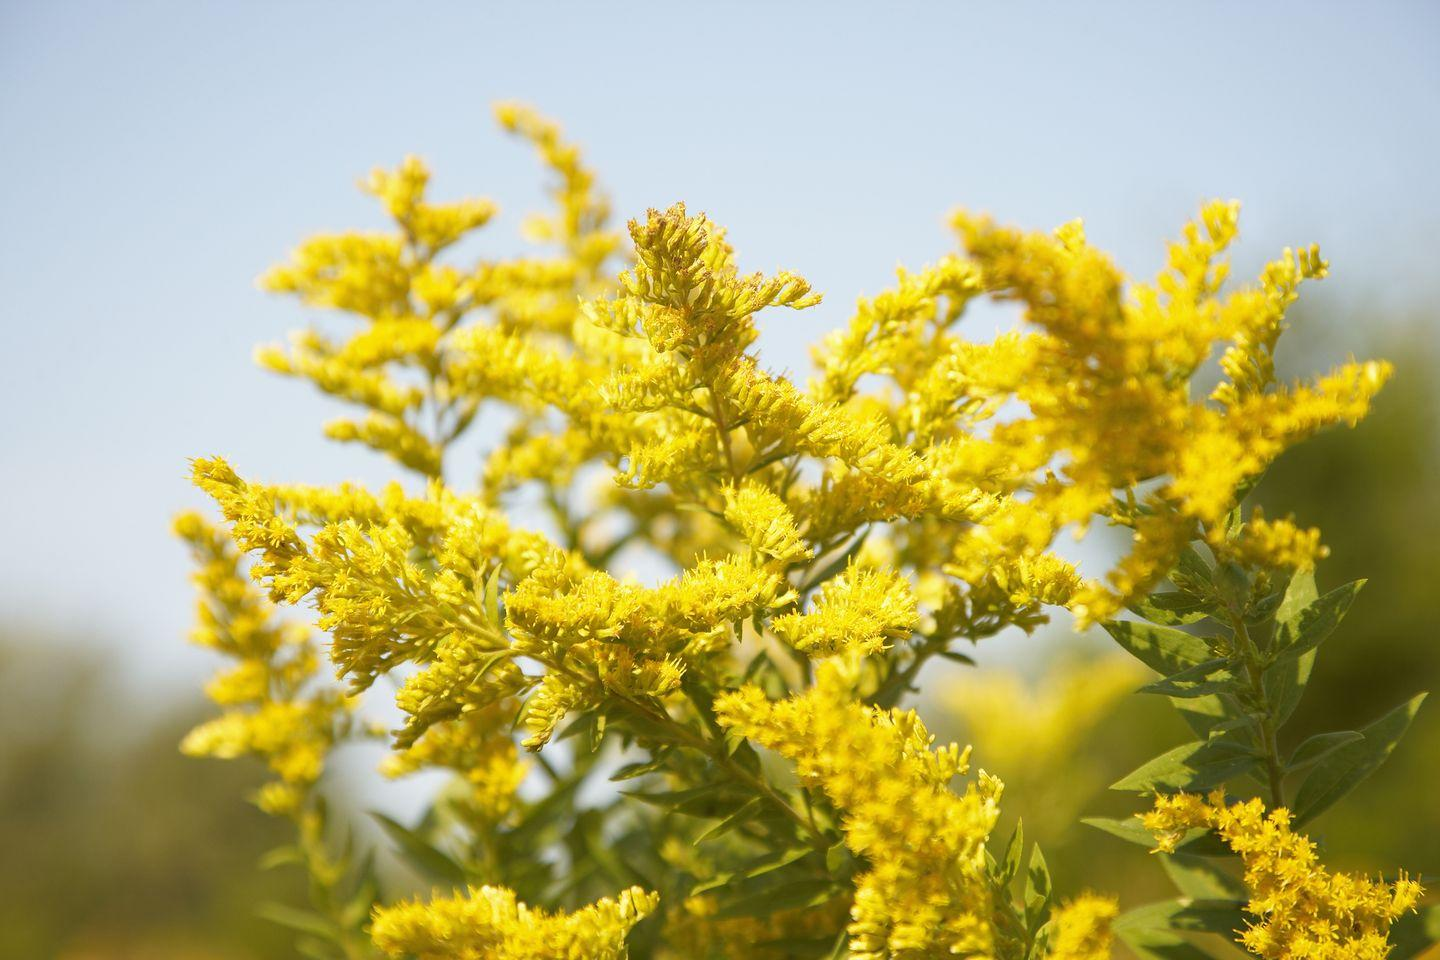 "<p>Known for its anti-inflammatory healing properties, goldenrod brings a vibrant color to your fall garden. </p><p><a class=""link rapid-noclick-resp"" href=""https://go.redirectingat.com?id=74968X1596630&url=https%3A%2F%2Fwww.etsy.com%2Flisting%2F648676477%2F100-organic-goldenrod-seeds-bulk-seeds%3Fgpla%3D1%26gao%3D1%26gclid%3DCjwKCAjw34n5BRA9EiwA2u9k34jxFAU6cTwPVg0I8XIM-wAJ1eGQ2lh2pSrwPKrIlPhAD6qrkbpxIxoC4RoQAvD_BwE&sref=https%3A%2F%2Fwww.elledecor.com%2Flife-culture%2Ffun-at-home%2Fg33469572%2Ffall-flowers%2F"" rel=""nofollow noopener"" target=""_blank"" data-ylk=""slk:Shop Now"">Shop Now</a></p>"